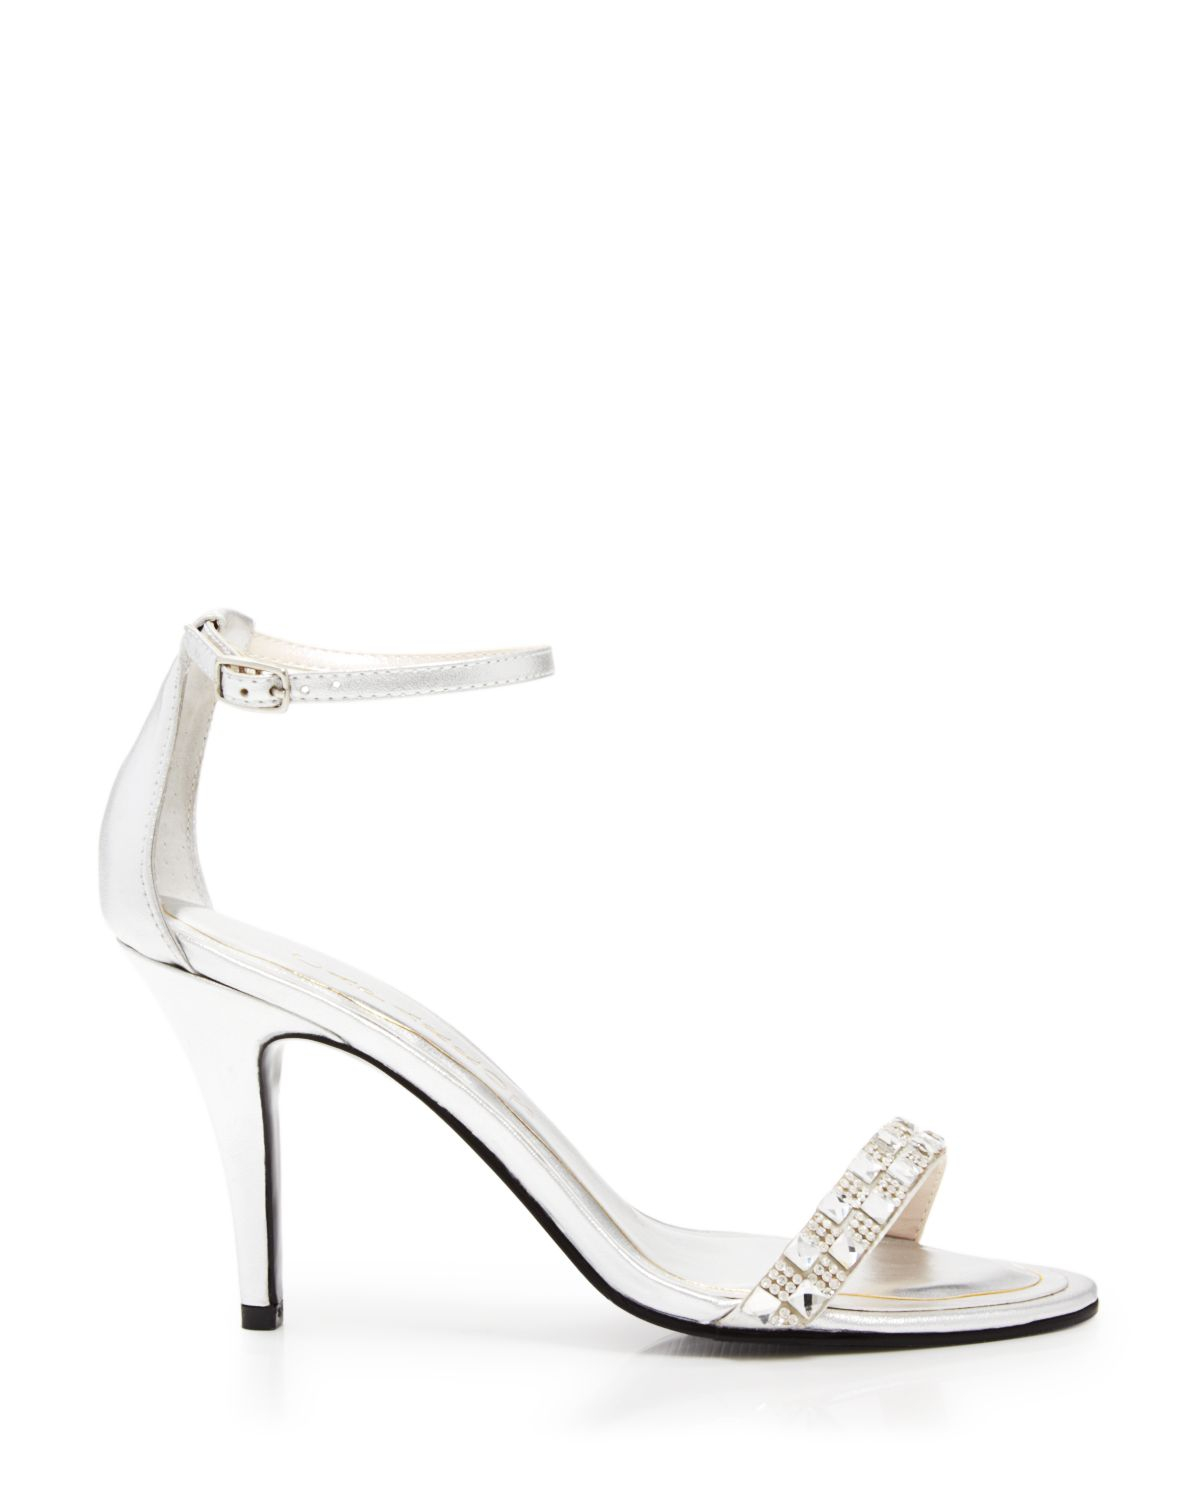 Lyst - Caparros Open Toe Evening Sandals - Sequoia High Heel in ...